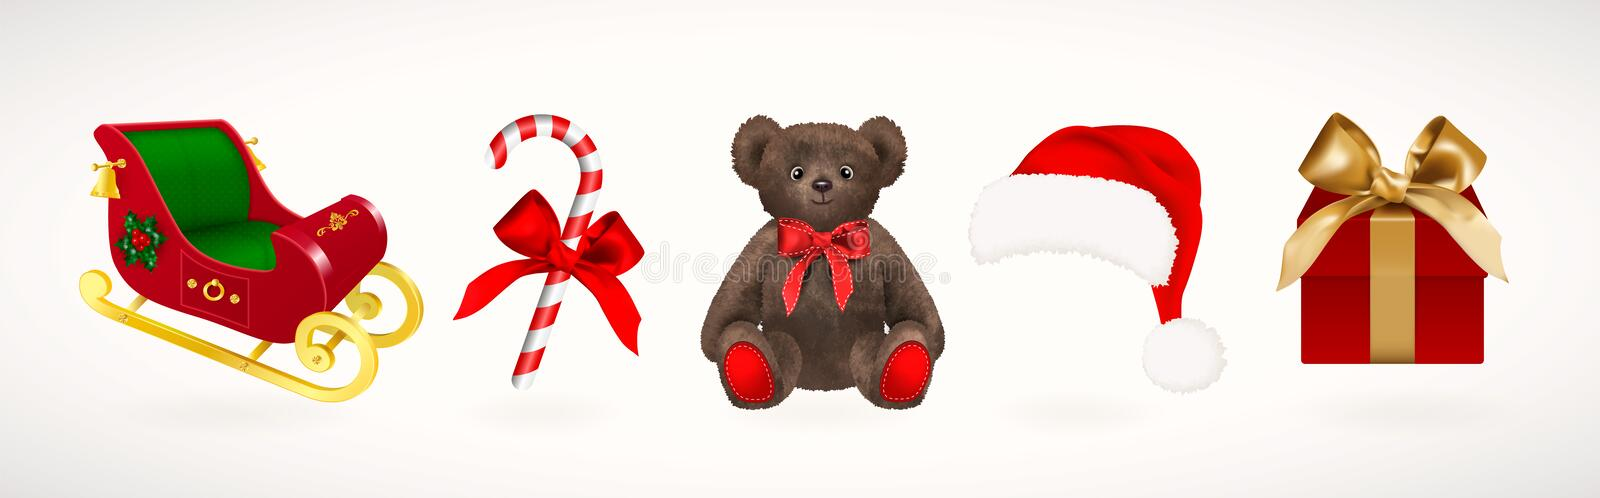 Winter holiday icons. Set of Christmas Santa Claus sleigh and hat, gift box with golden ribbon, candy cane and teddy bear toy with royalty free illustration